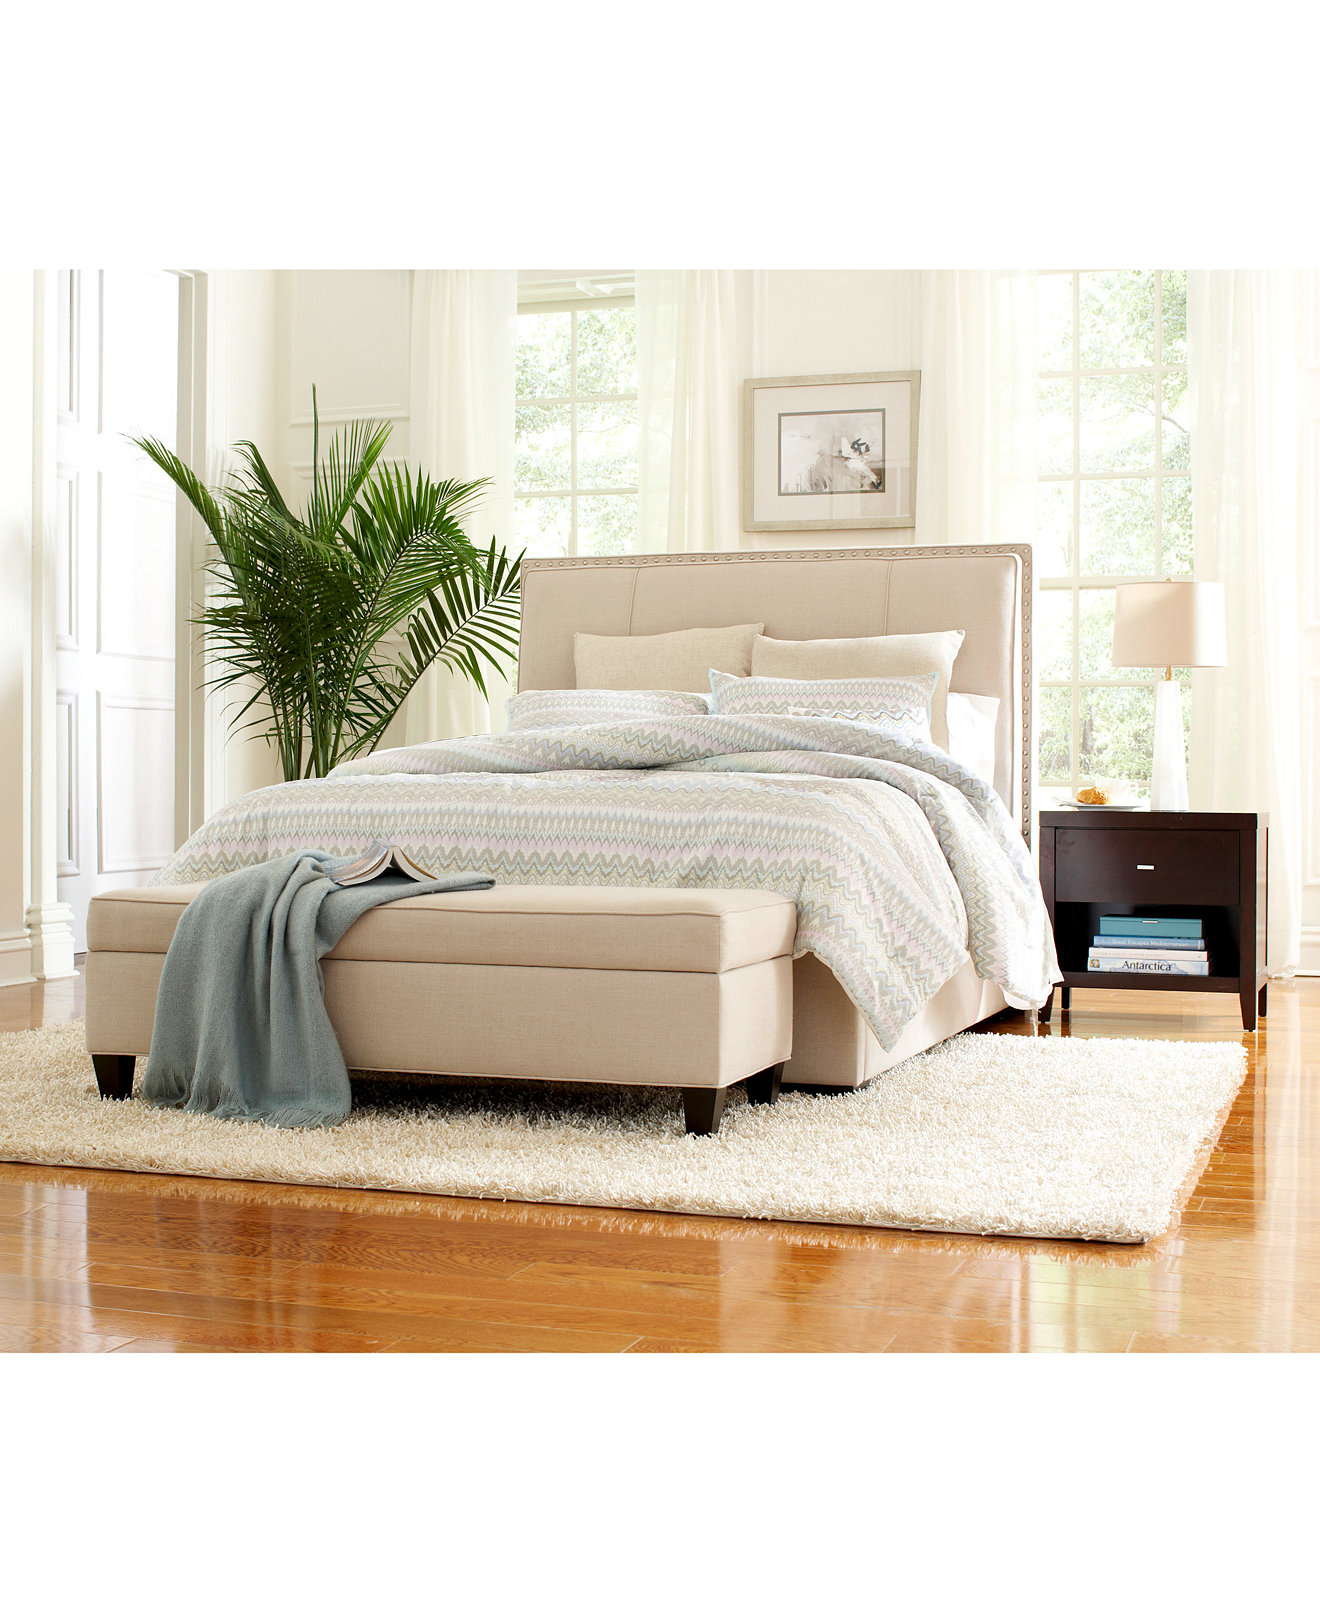 Bedroom Collections Bedroom Furniture Sets - Macy's